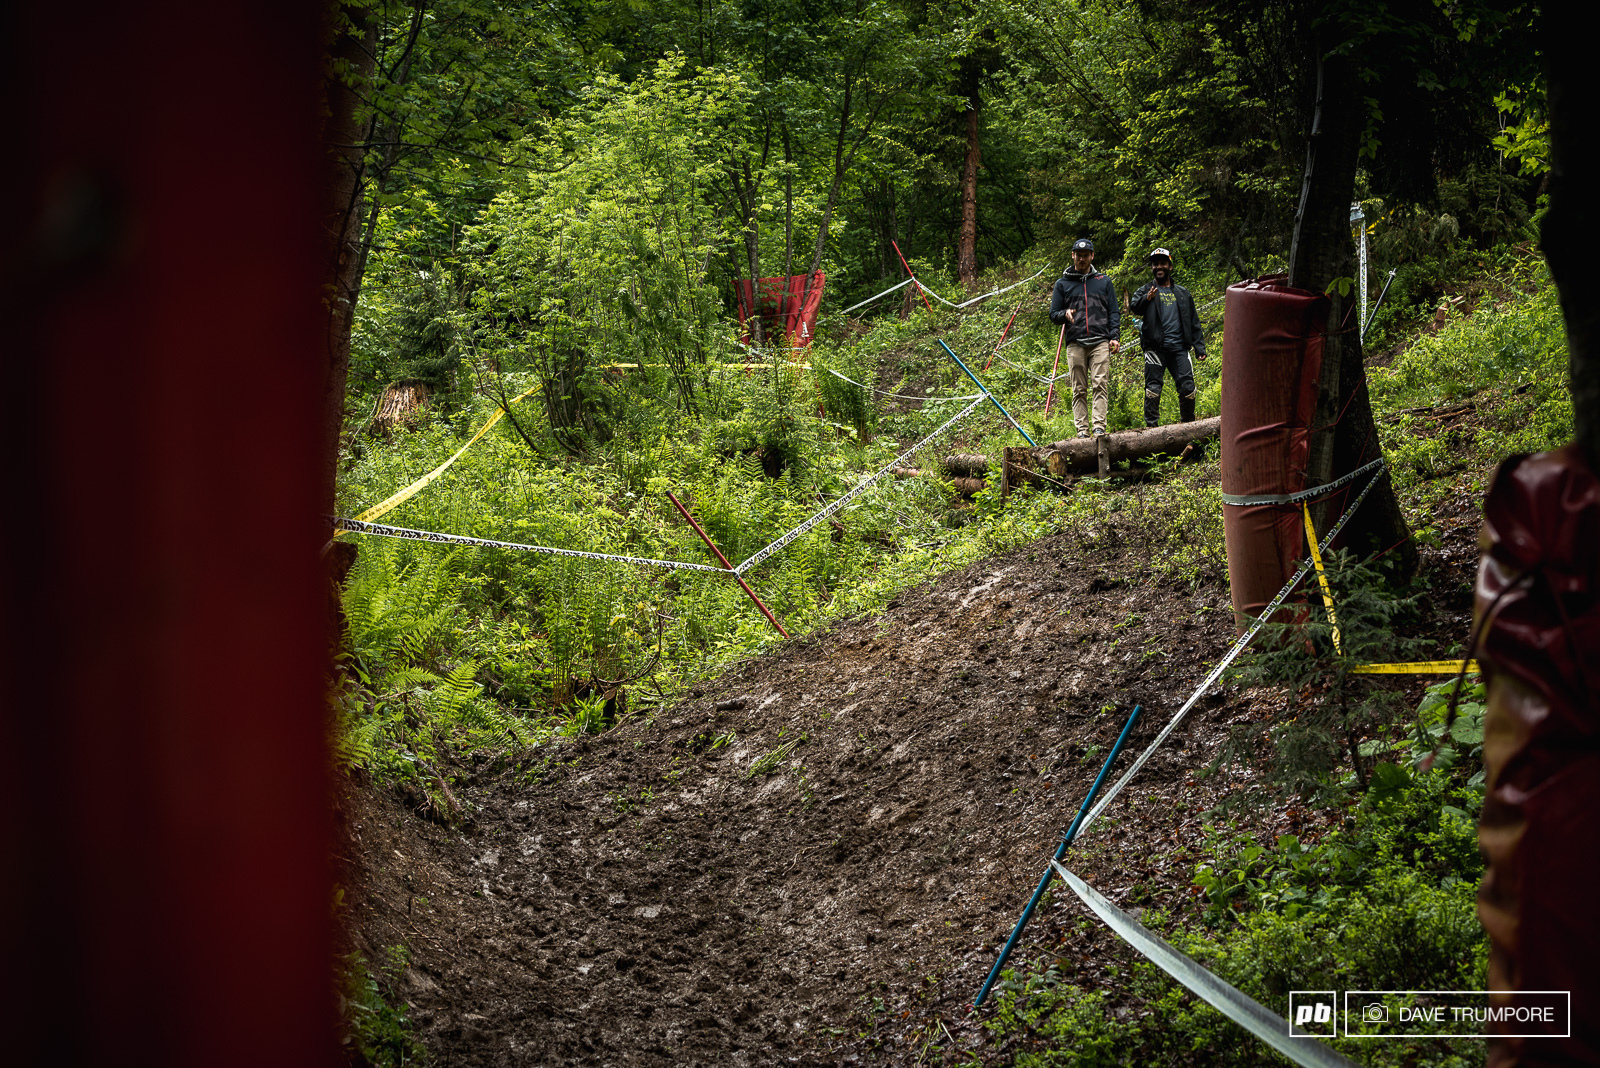 Eliot Jackson and Bas Van Steenburgen discuss what it s going to be like to land on this off camber and slide all the way down through the natural catch berm.